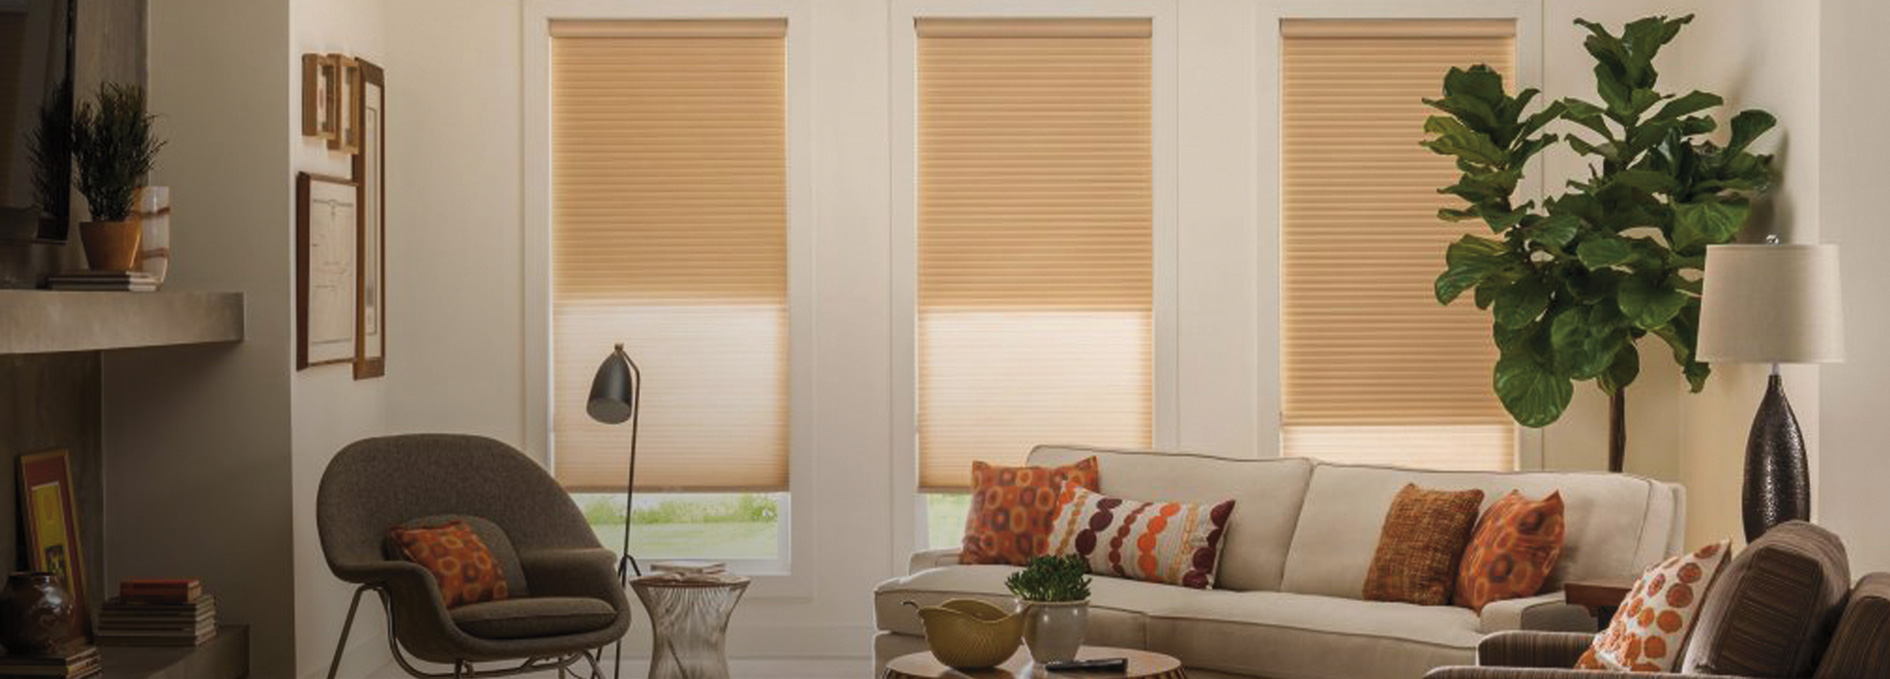 room southwest phoenix alta shade natural shutters blinds living and shades